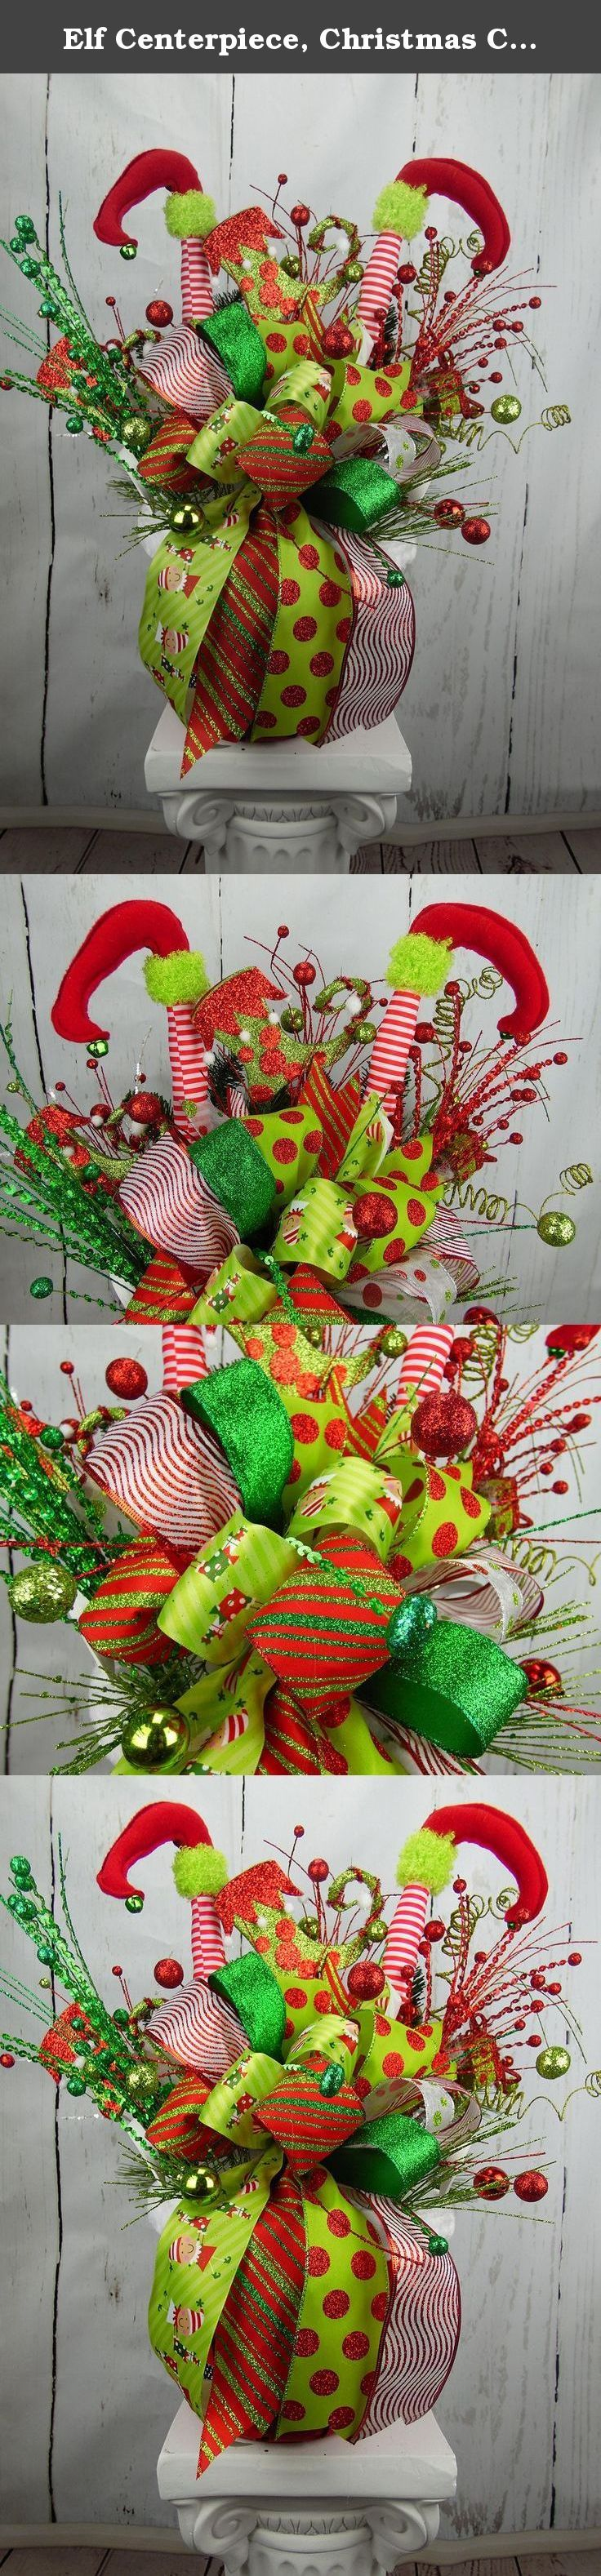 "Elf Centerpiece, Christmas Centerpiece, Holiday Centerpiece, Elf Leg Decor, Holiday Decor, Table Decor, Elf Decor, Red and Green Christmas. Celebrate the upcoming Holiday season with this cute centerpiece that features the traditional colors of Christmas. This cute red basket features a glittery ""belt"" just like Santa!! The basket is filled with a large bow made up of 6 different wired holiday ribbons. The focal point of this centerpiece is the cute elf legs and shoes with the bells on…"